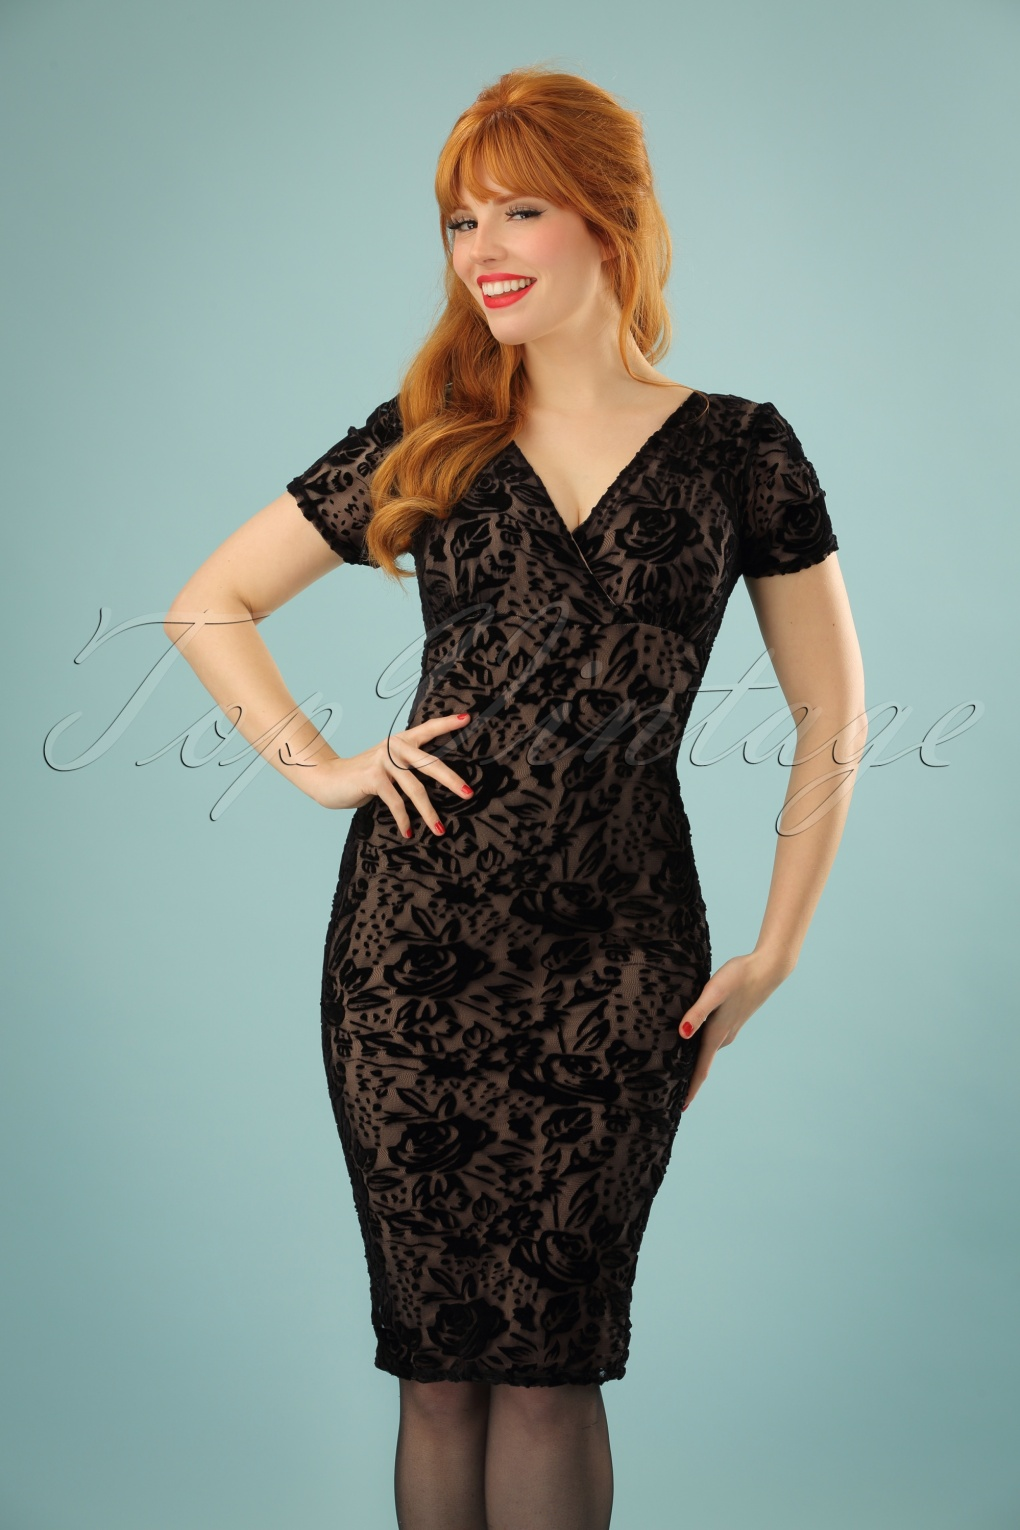 The Lace Trim Pencil Dress With Crossover Hem is made of a sexy fabric with a bit of stretch to it. It has a rounded neckline and a fitted pencil cut. The best part of this dress has to be the semi-sheer lace that trims the neckline and bottom hem of the skirt.